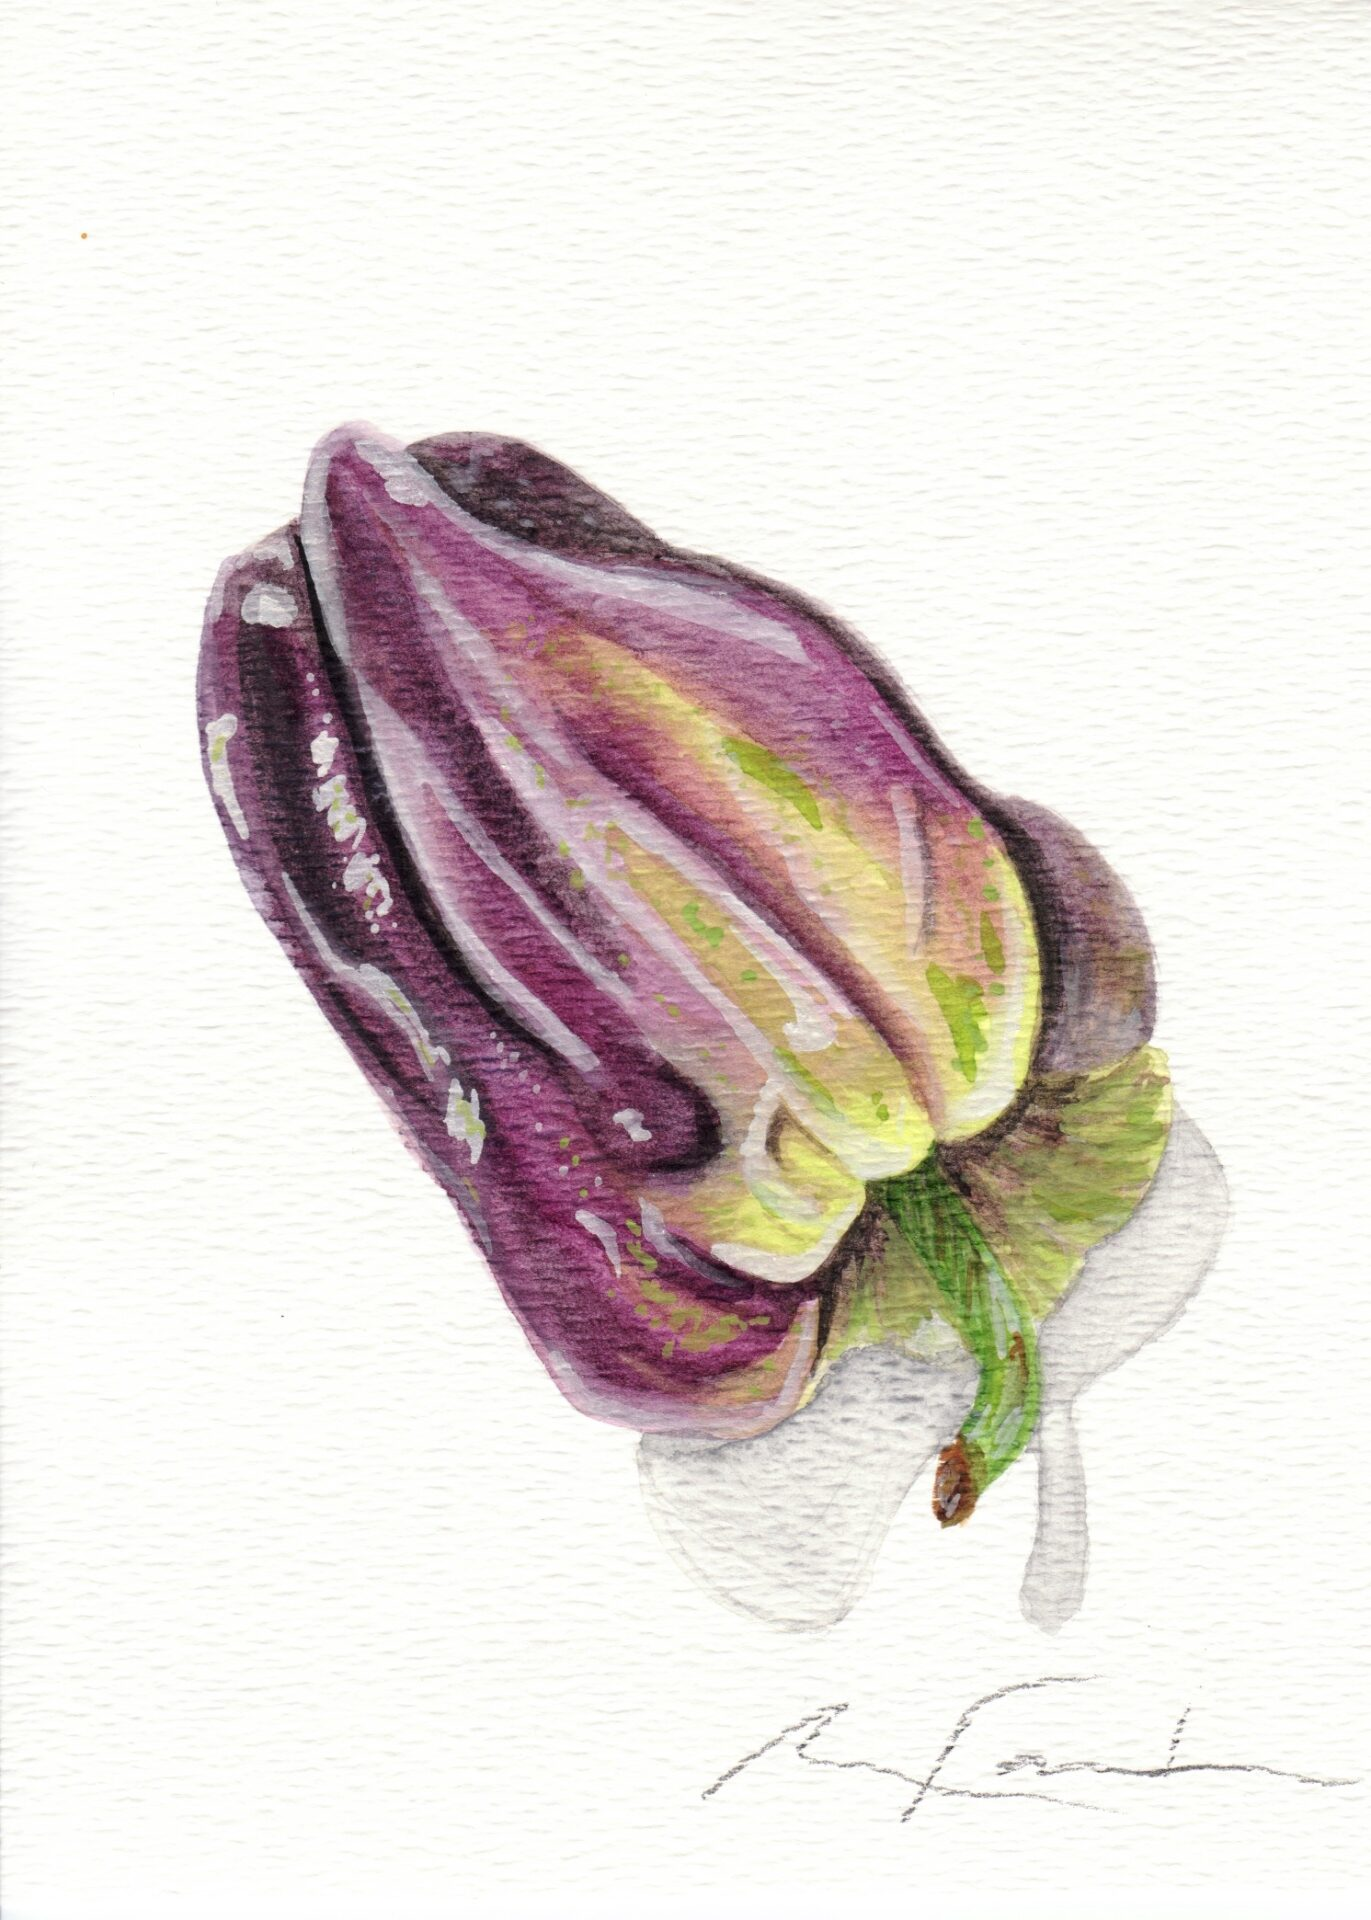 "Angela Faustina, Purple Holland bell pepper study, 2016. Watercolor on paper, 5"" by 7""."